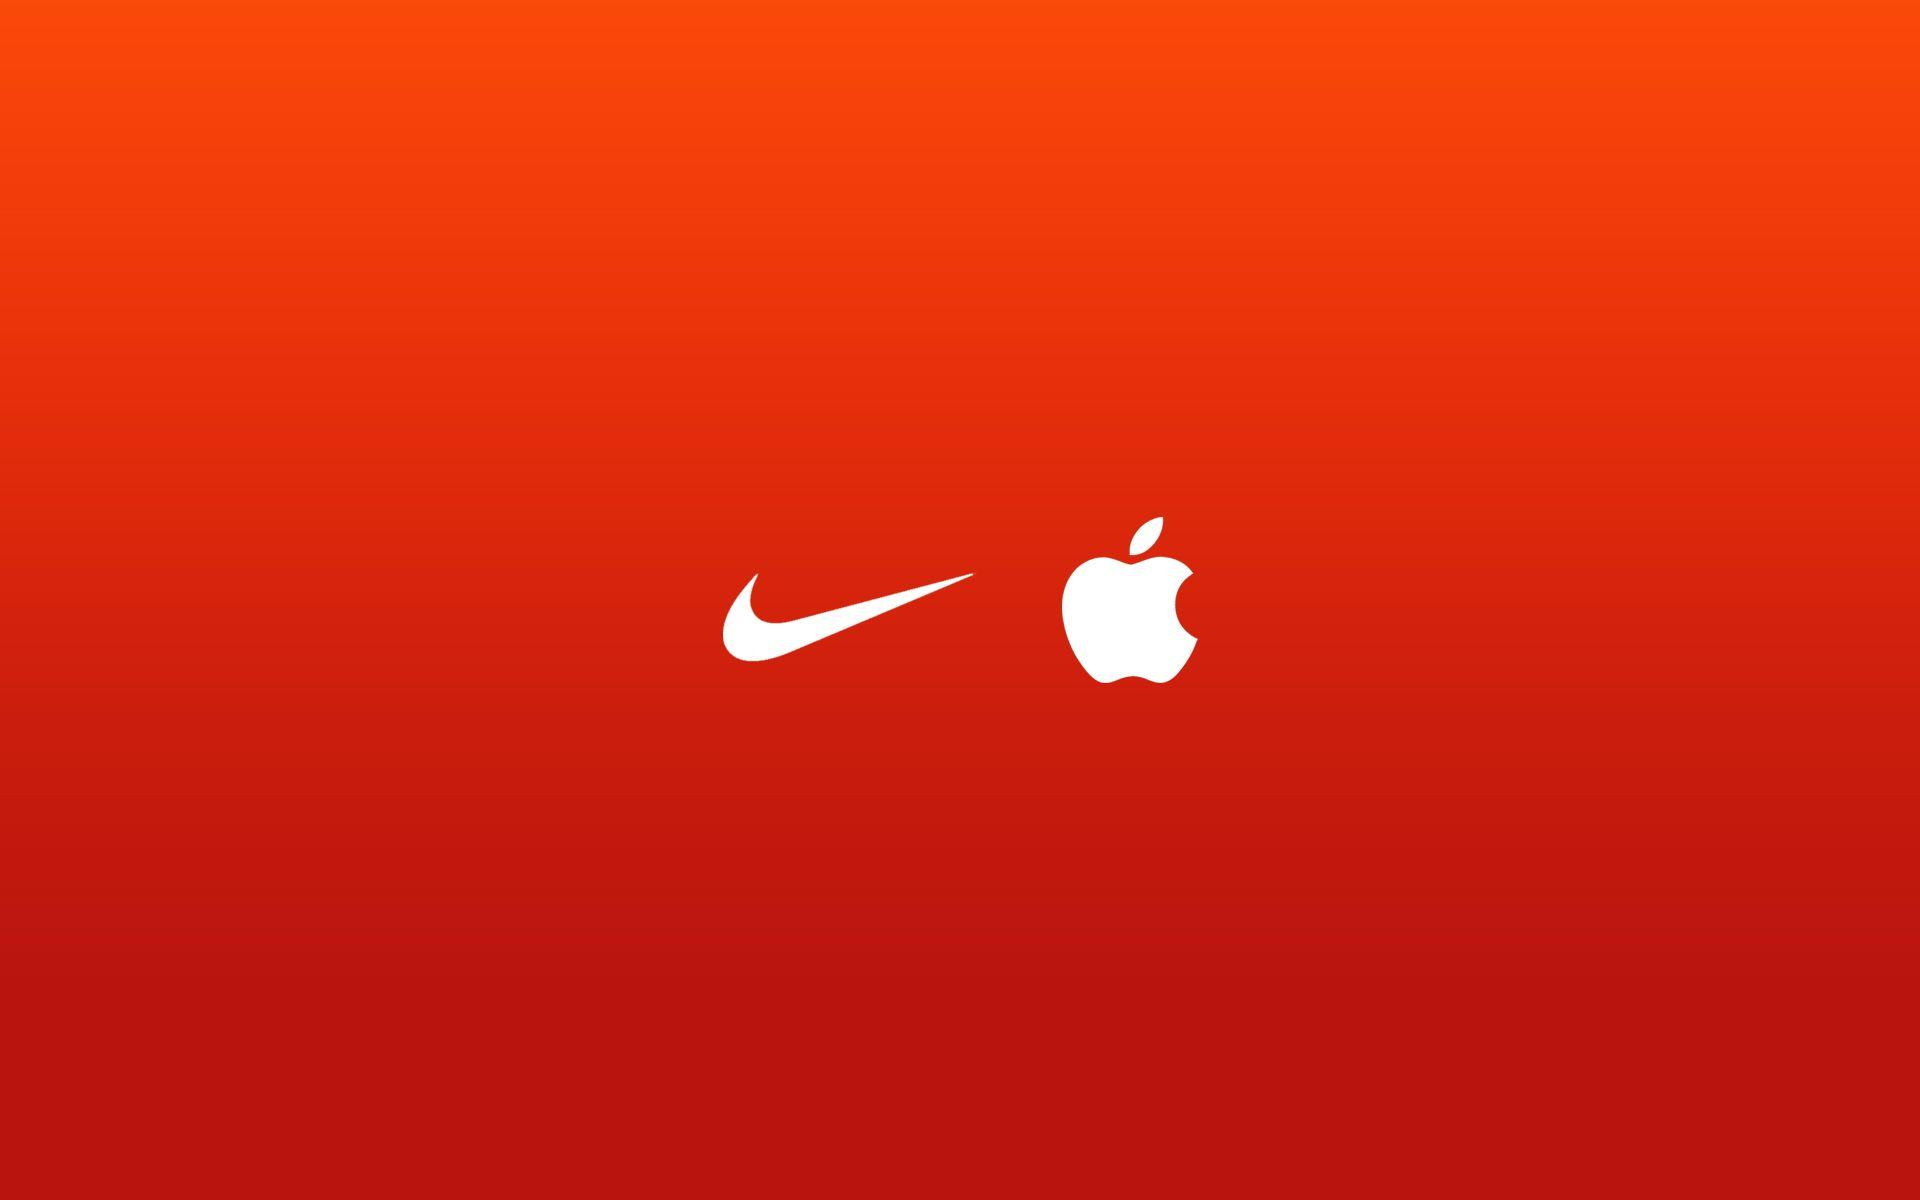 Nike HD Wallpapers - Wallpaper Cave